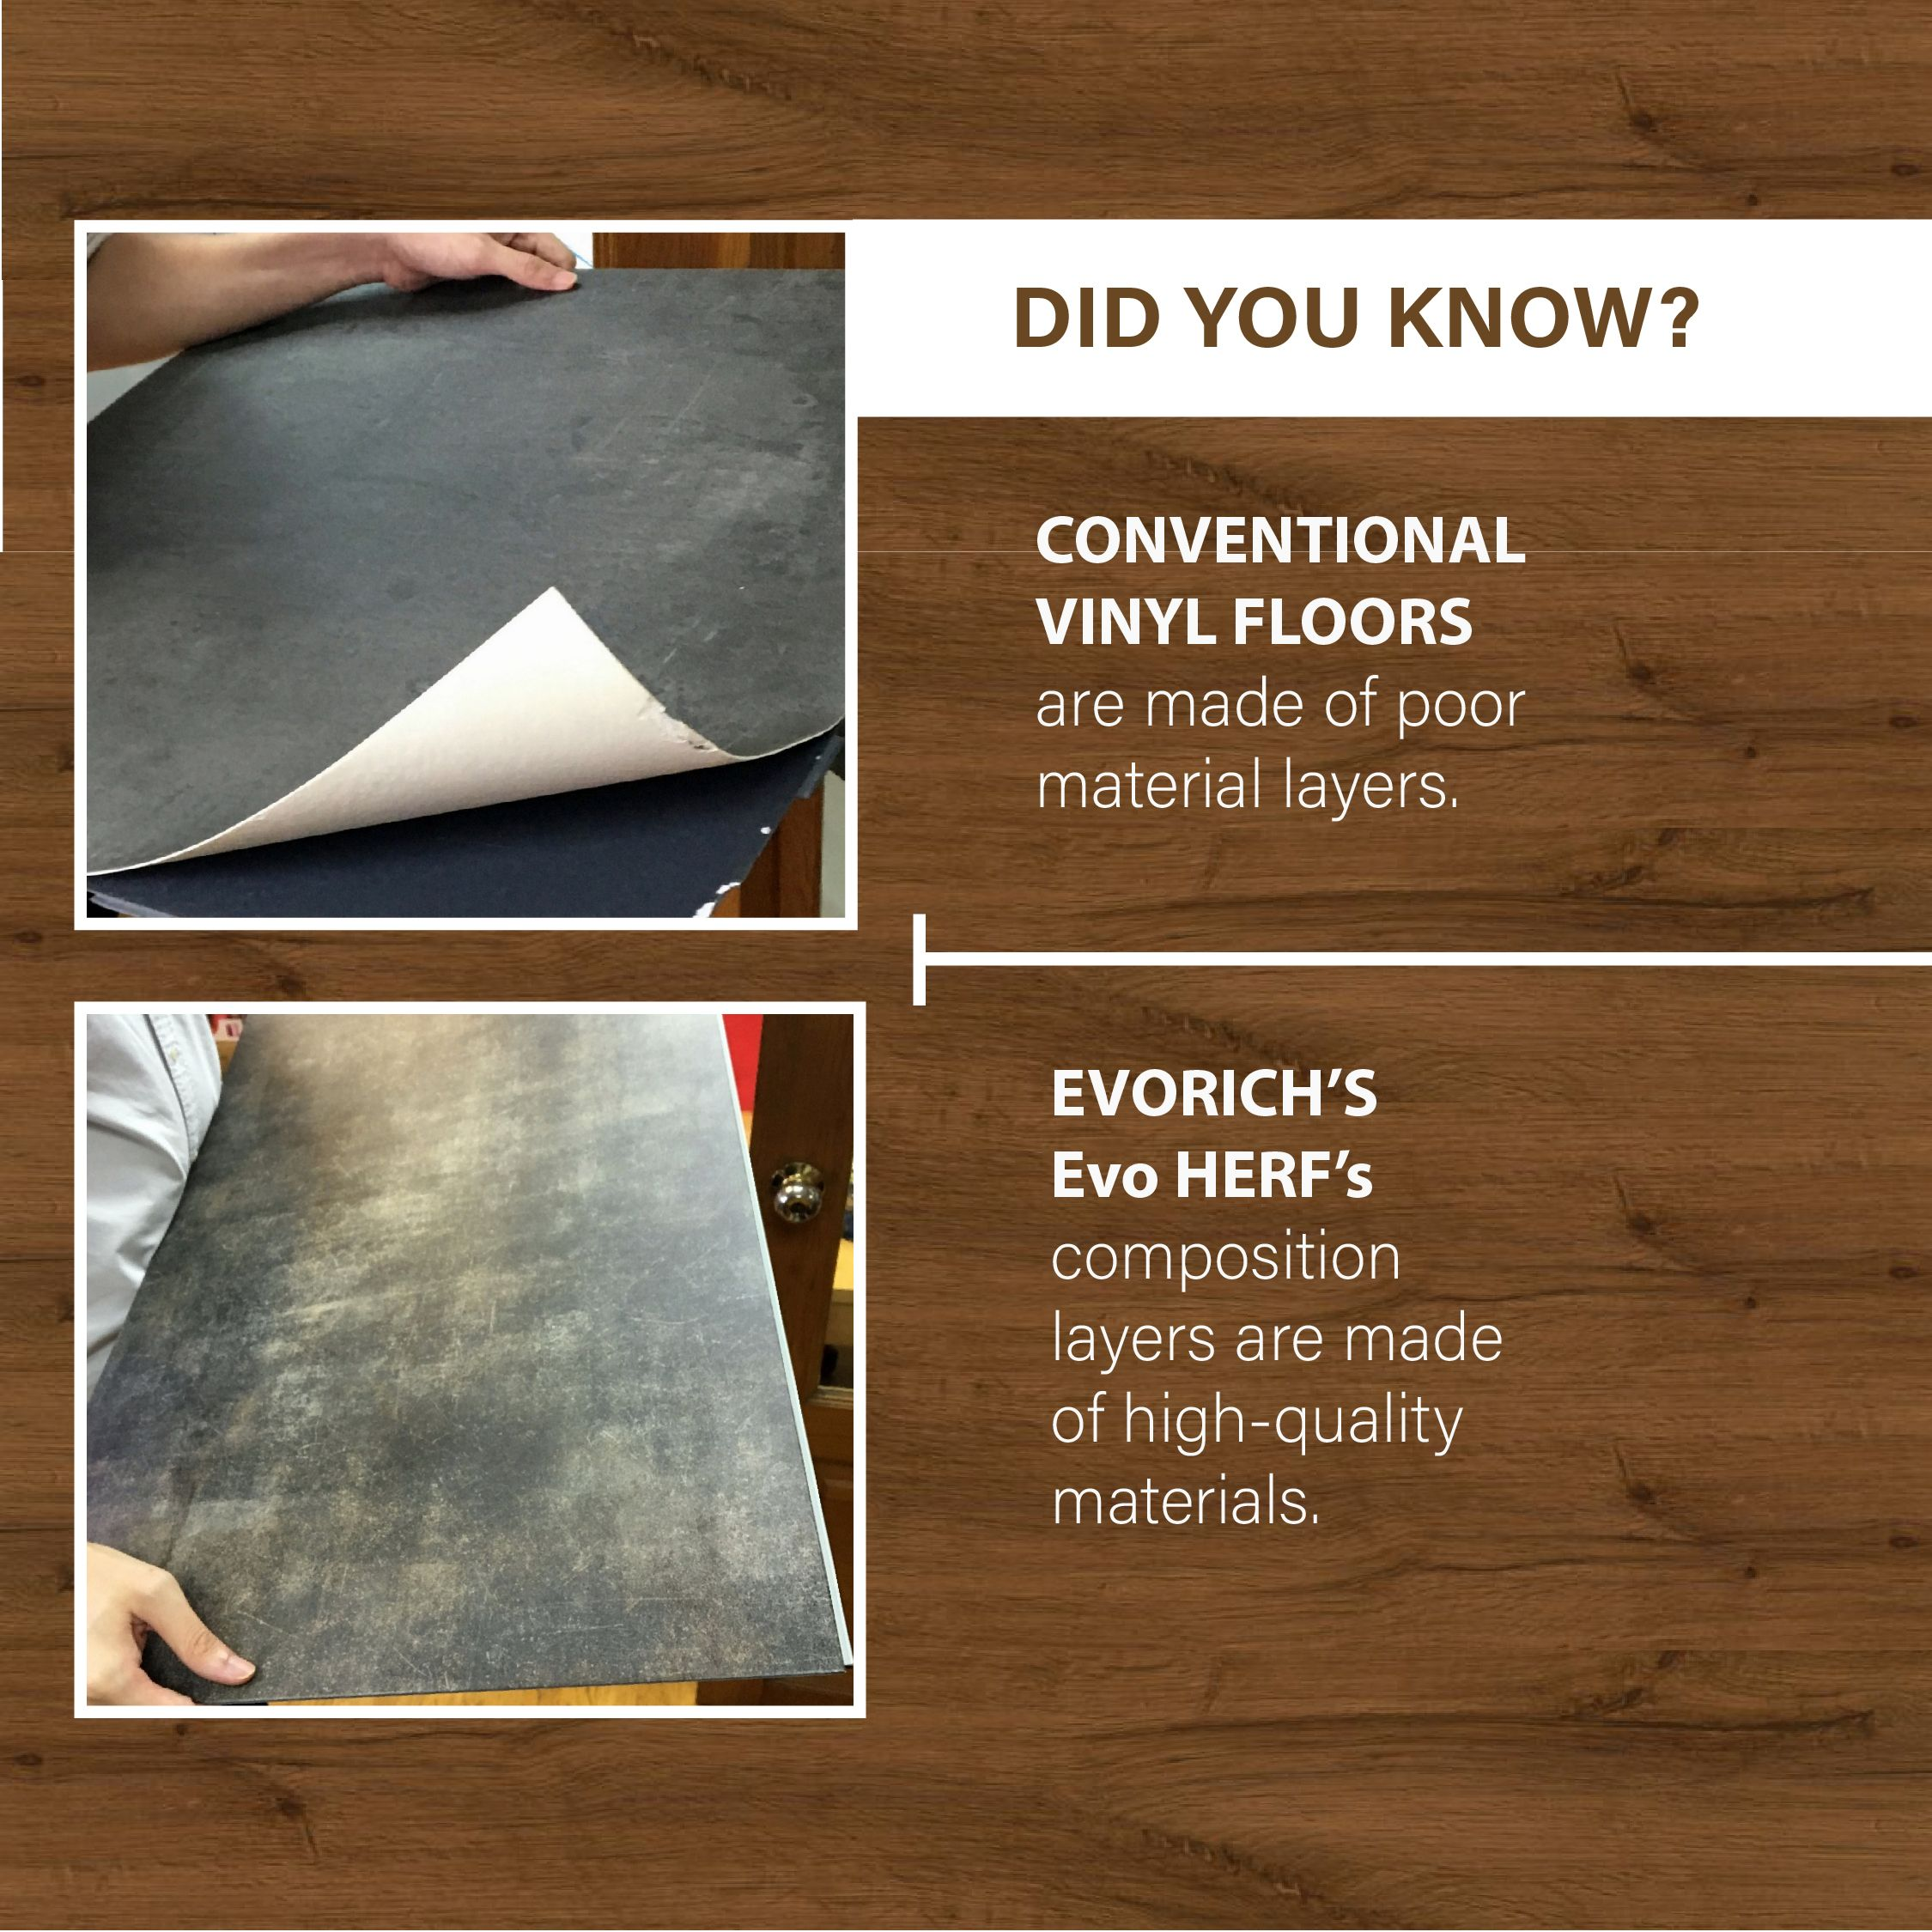 At Evorich We Place A Strong Focus On Product Quality After All The Price Is The Amount You Pay And Value Is Wh Resilient Flooring Vinyl Flooring Resilience